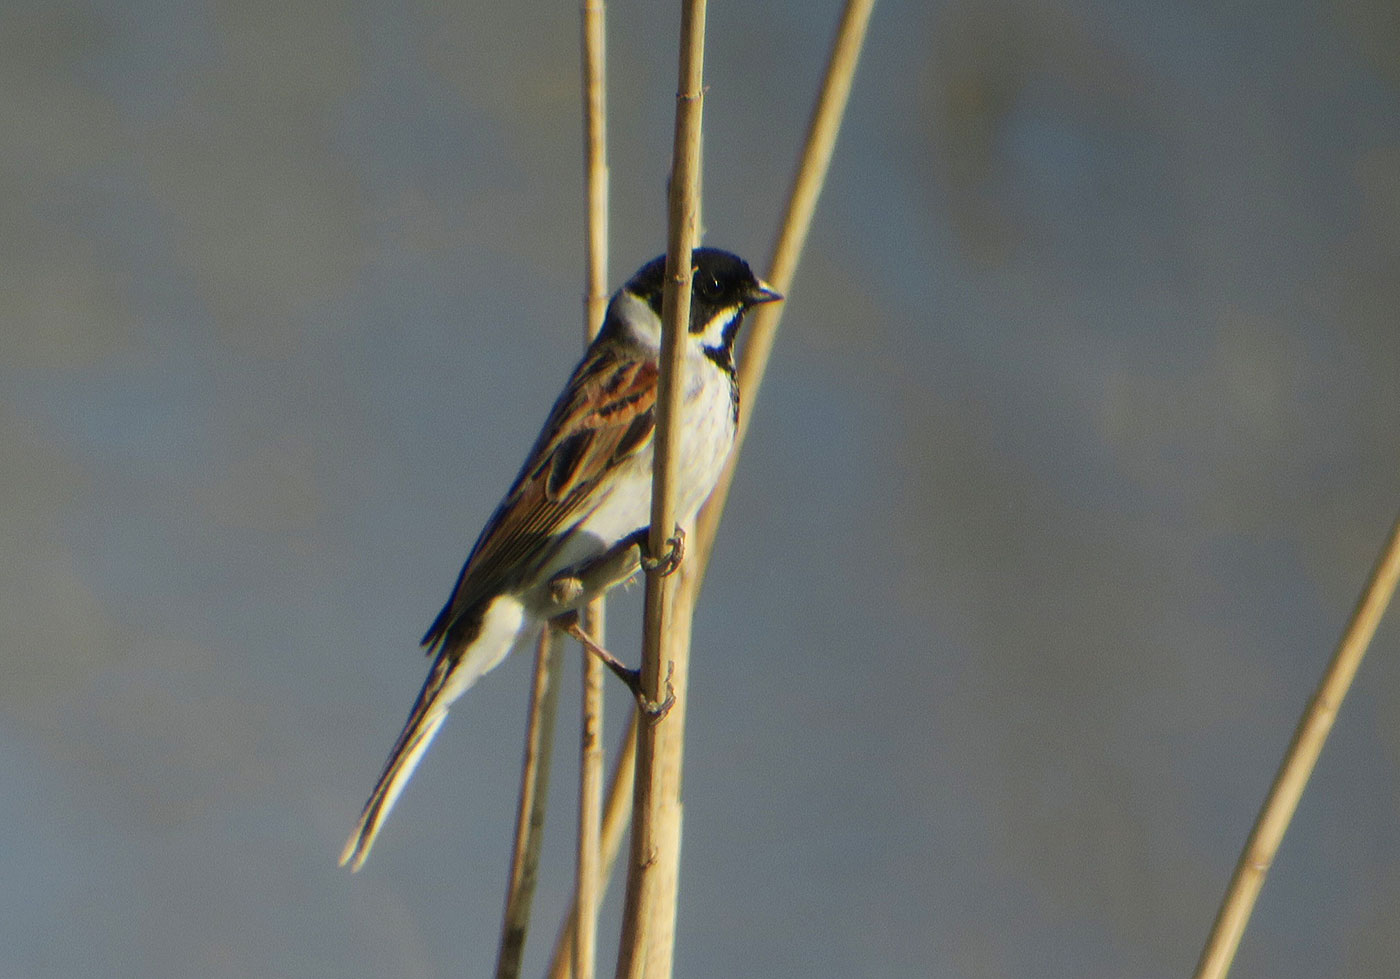 14_rohrammer_common-reed-bunting_echinger_stausee_2019-03-31_8417